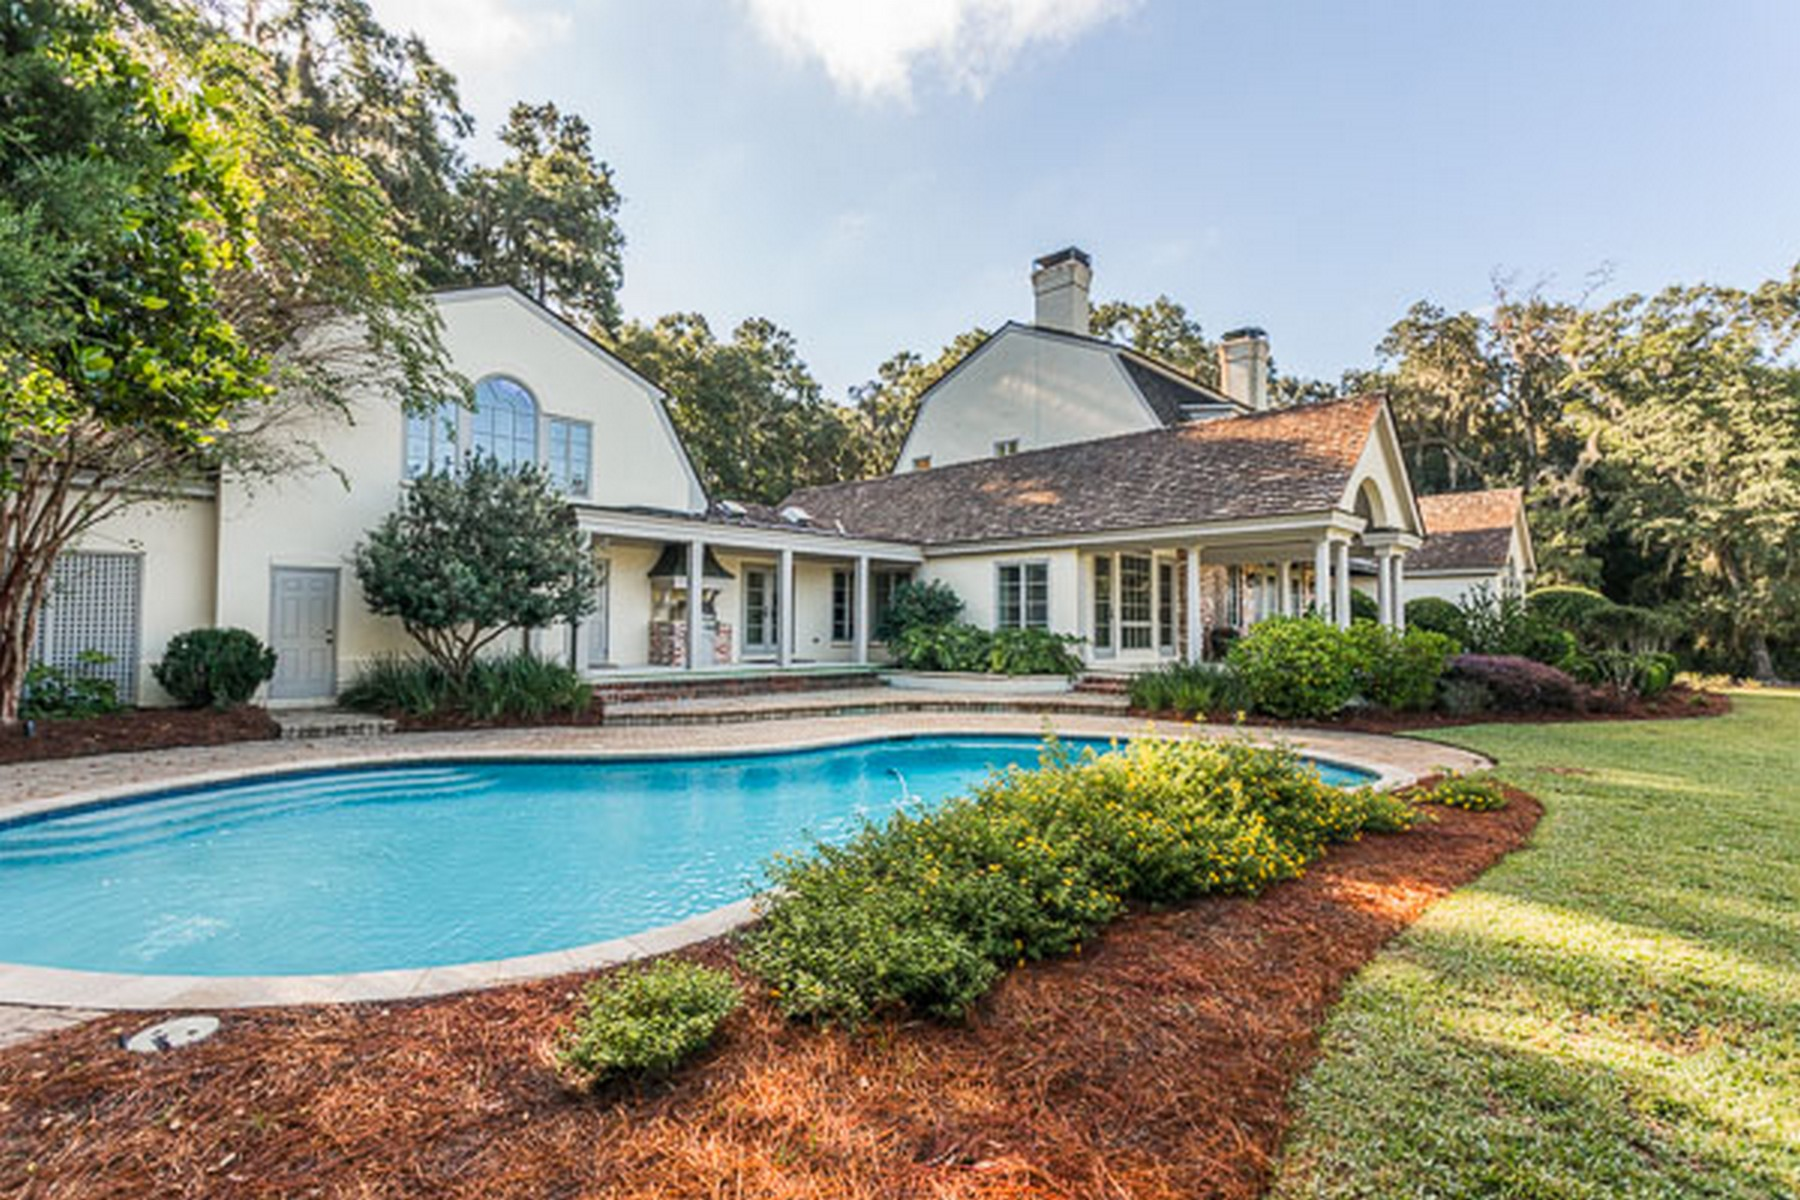 Single Family Home for Active at 446 Saint Annie's St. Simons Island, Georgia 31522 United States